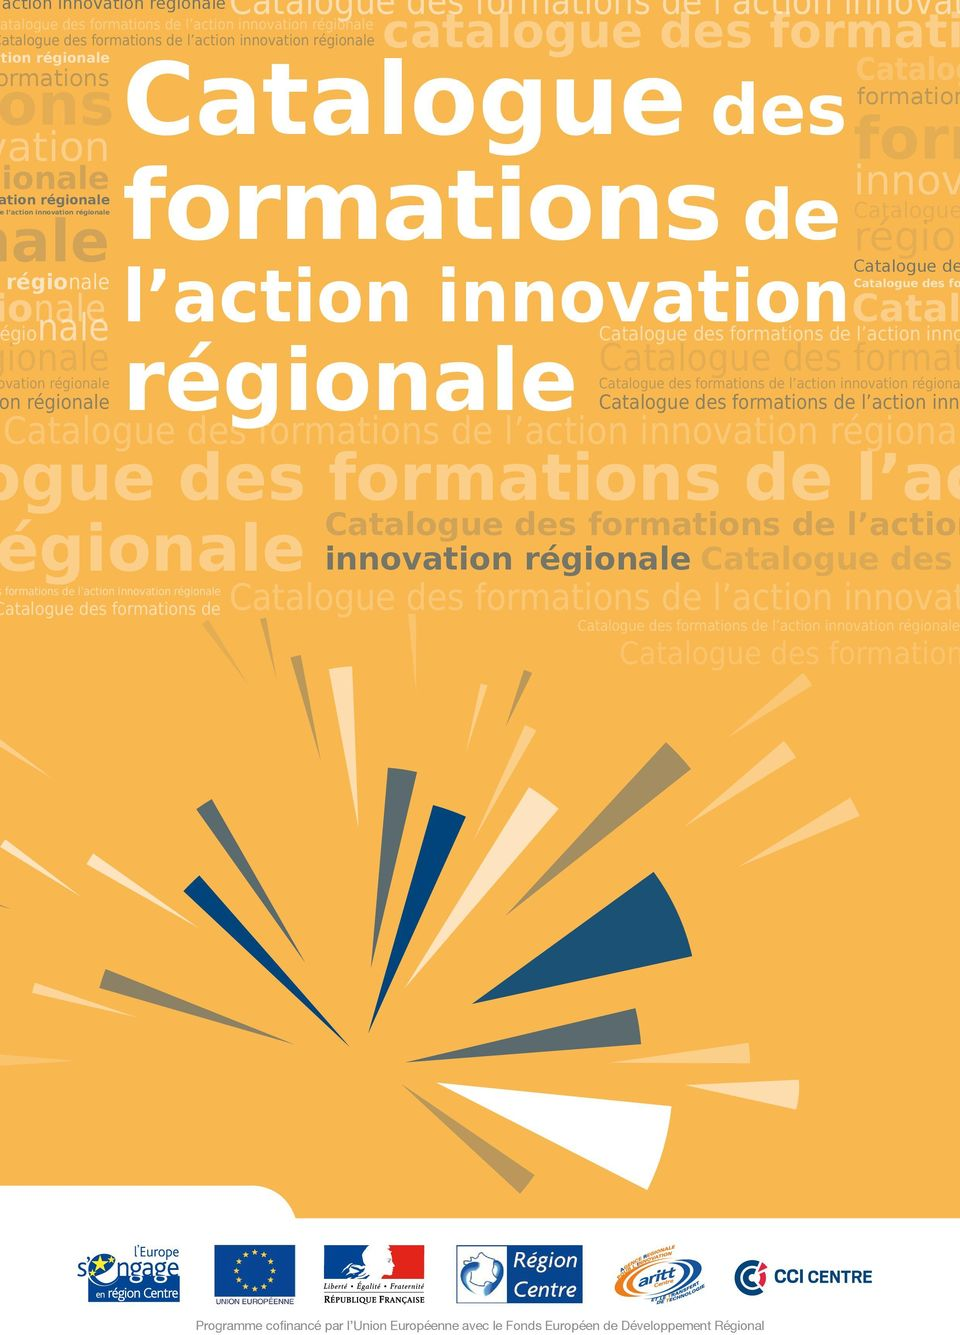 des fo Catal régionale catalogue des formati formation form innov Catalogue région Catalogue de Catalogue des formations de l action inno Catalogue des format Catalogue des formations de l action